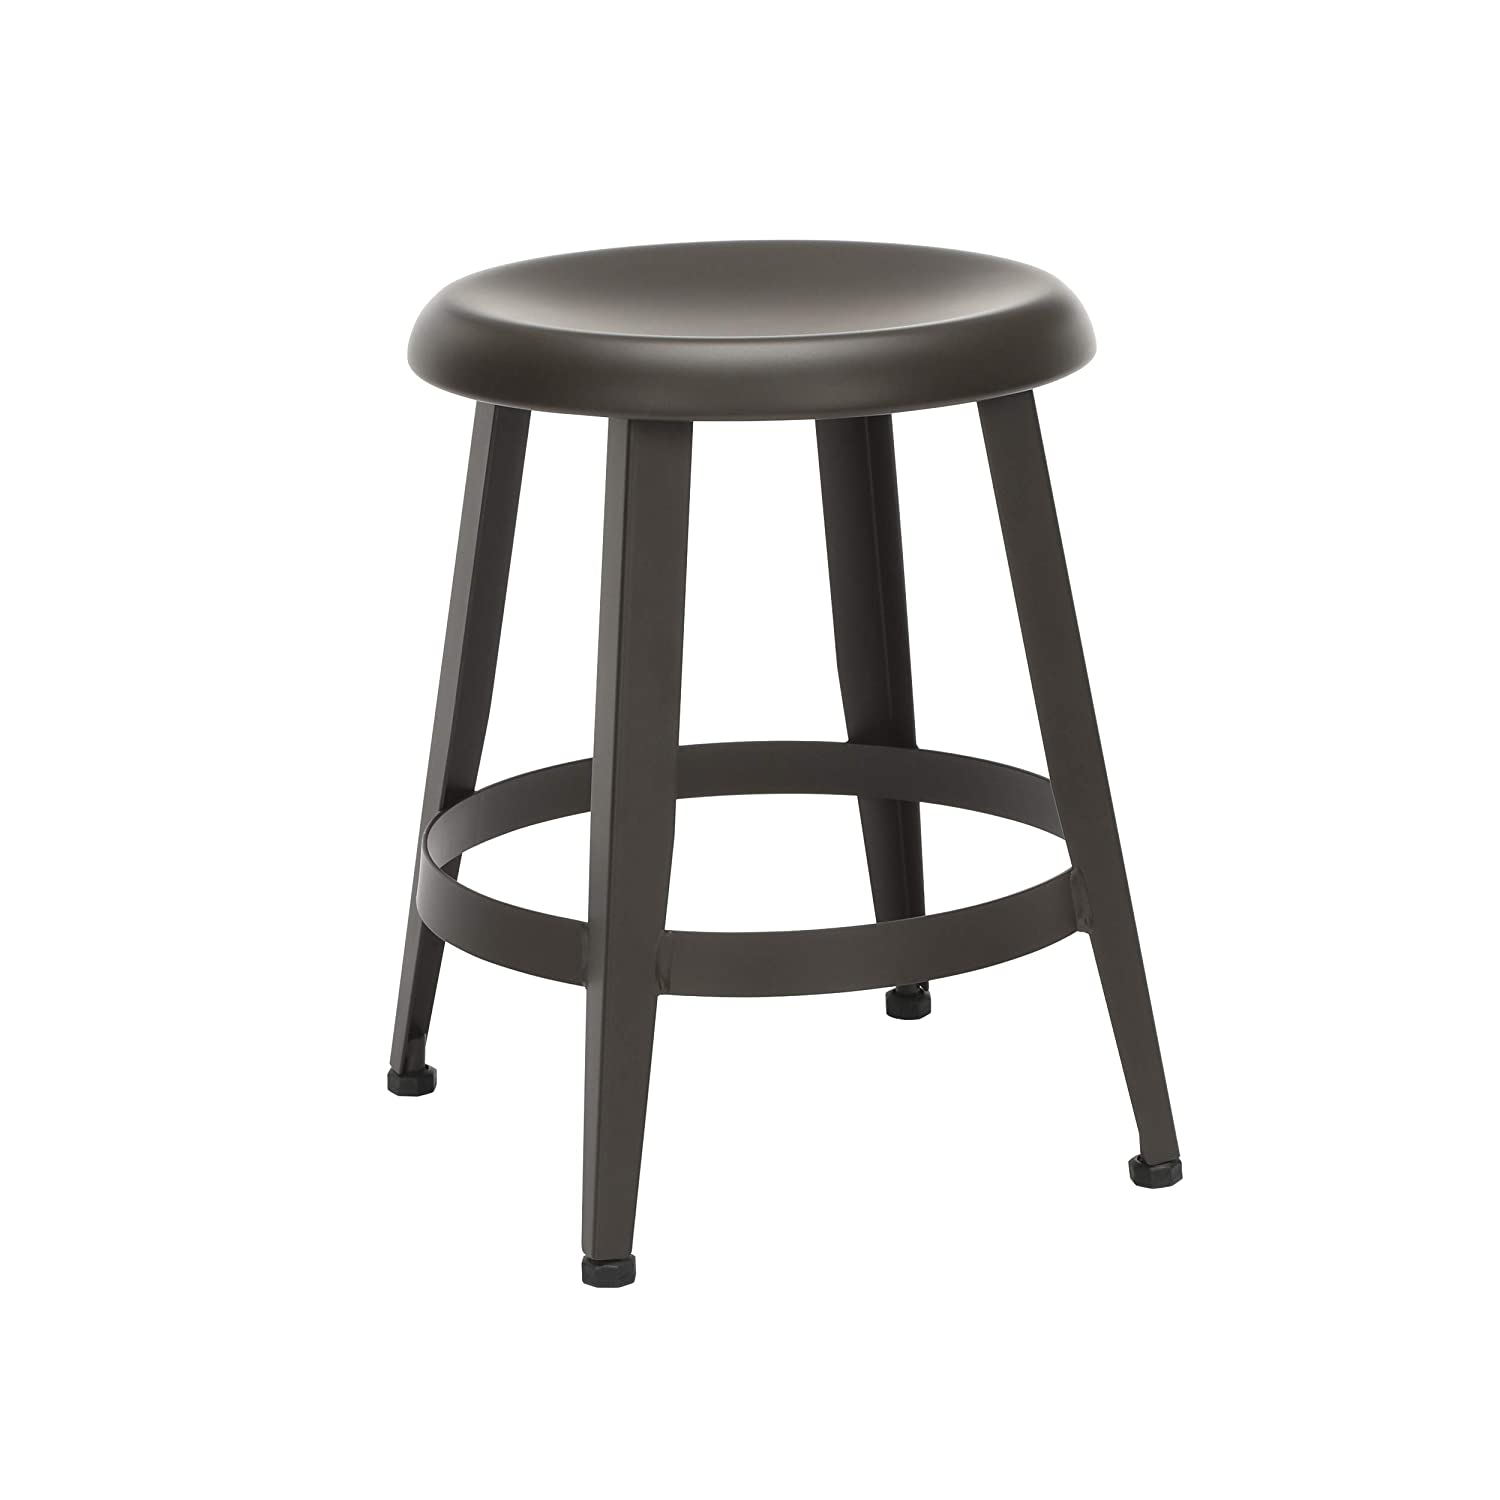 Strange Details About 18 Table Height Industrial Style Metal Stool In Antique Brown Finish Onthecornerstone Fun Painted Chair Ideas Images Onthecornerstoneorg